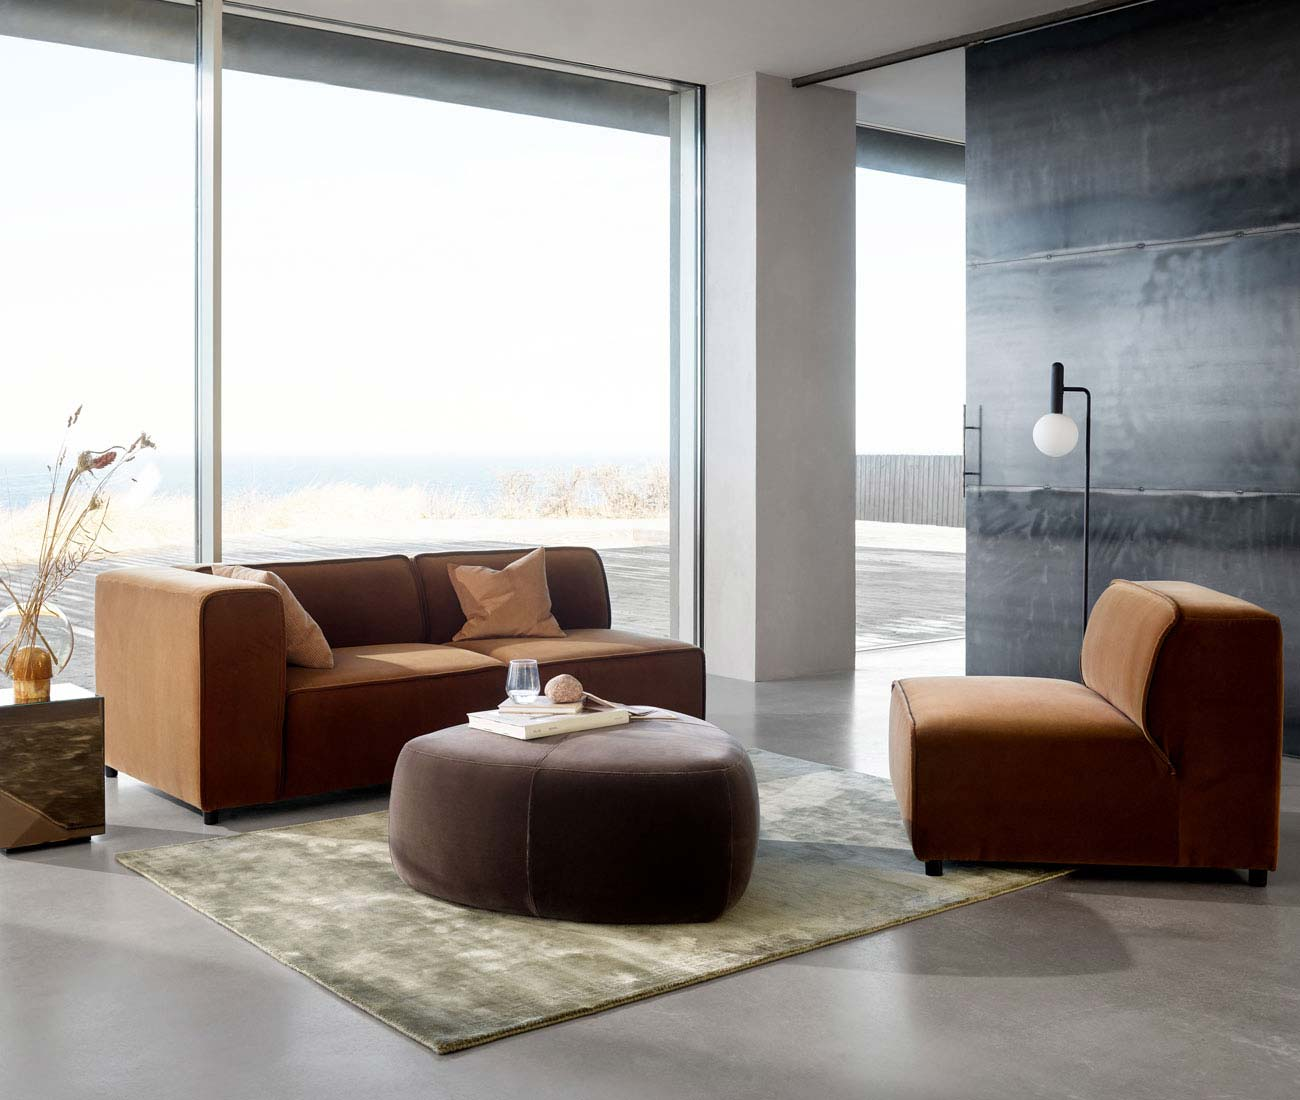 Danish modular sofa design